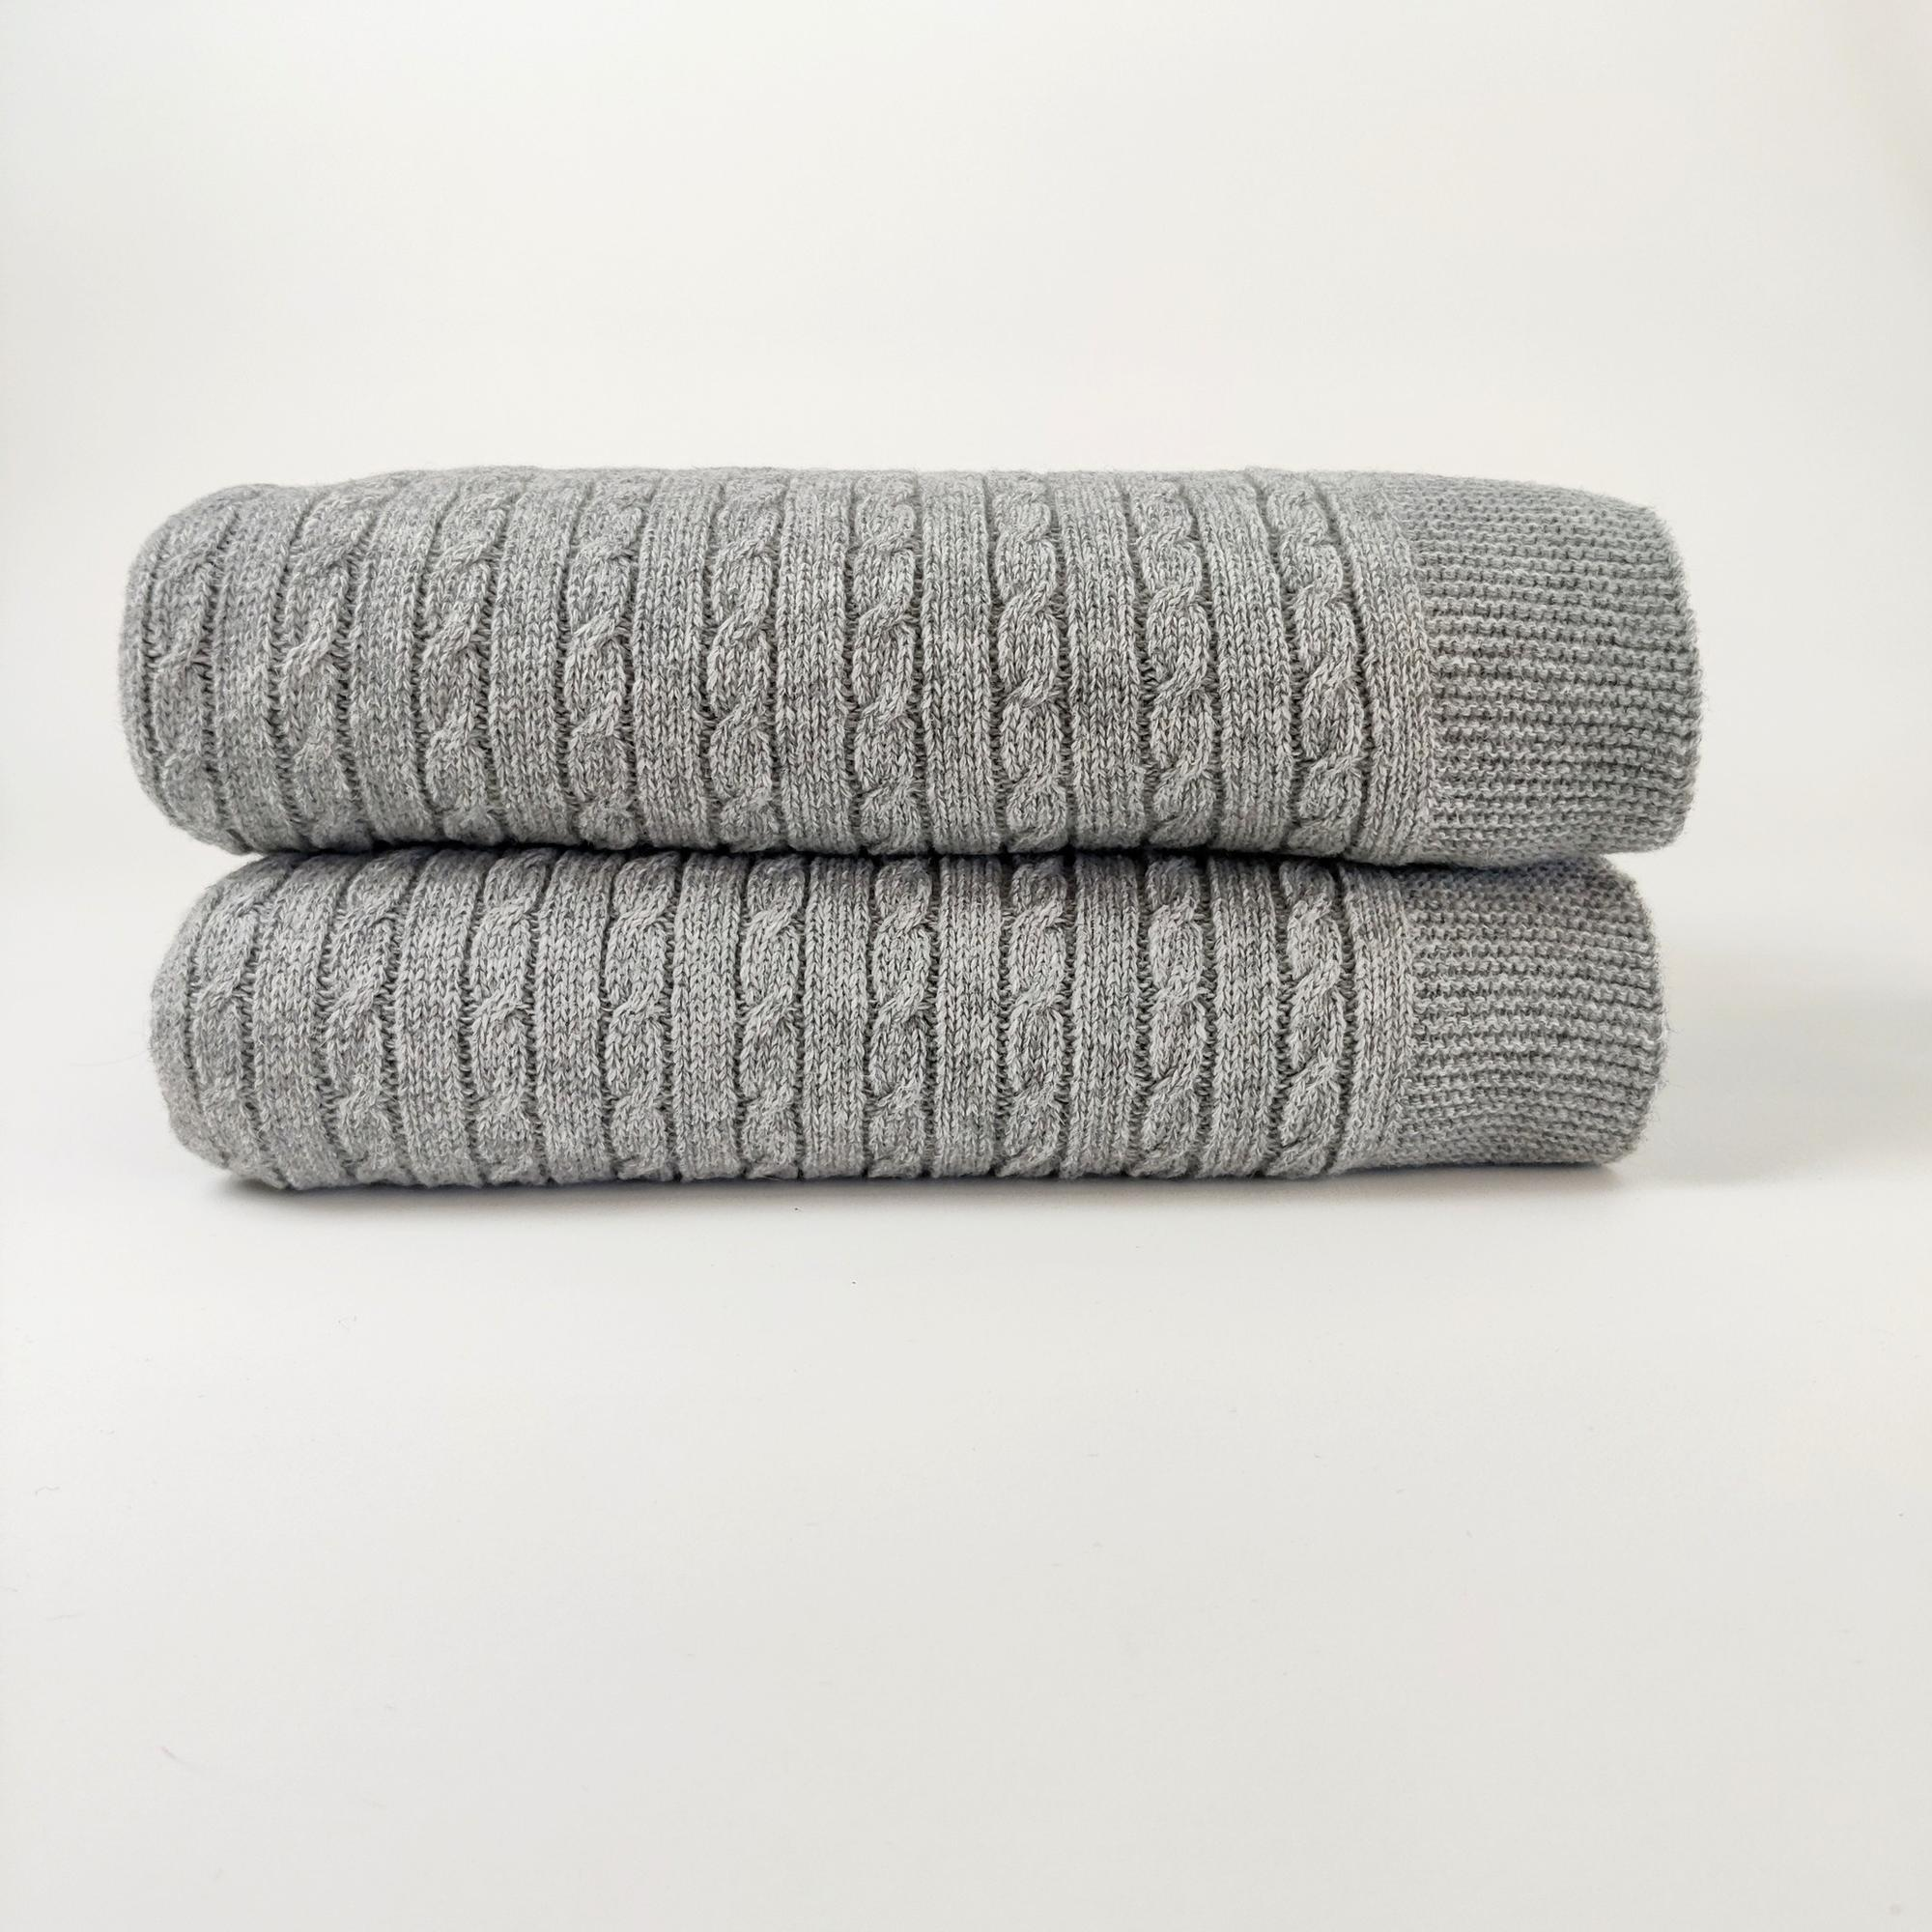 KOC CABLE KNIT GREY - Resort Living